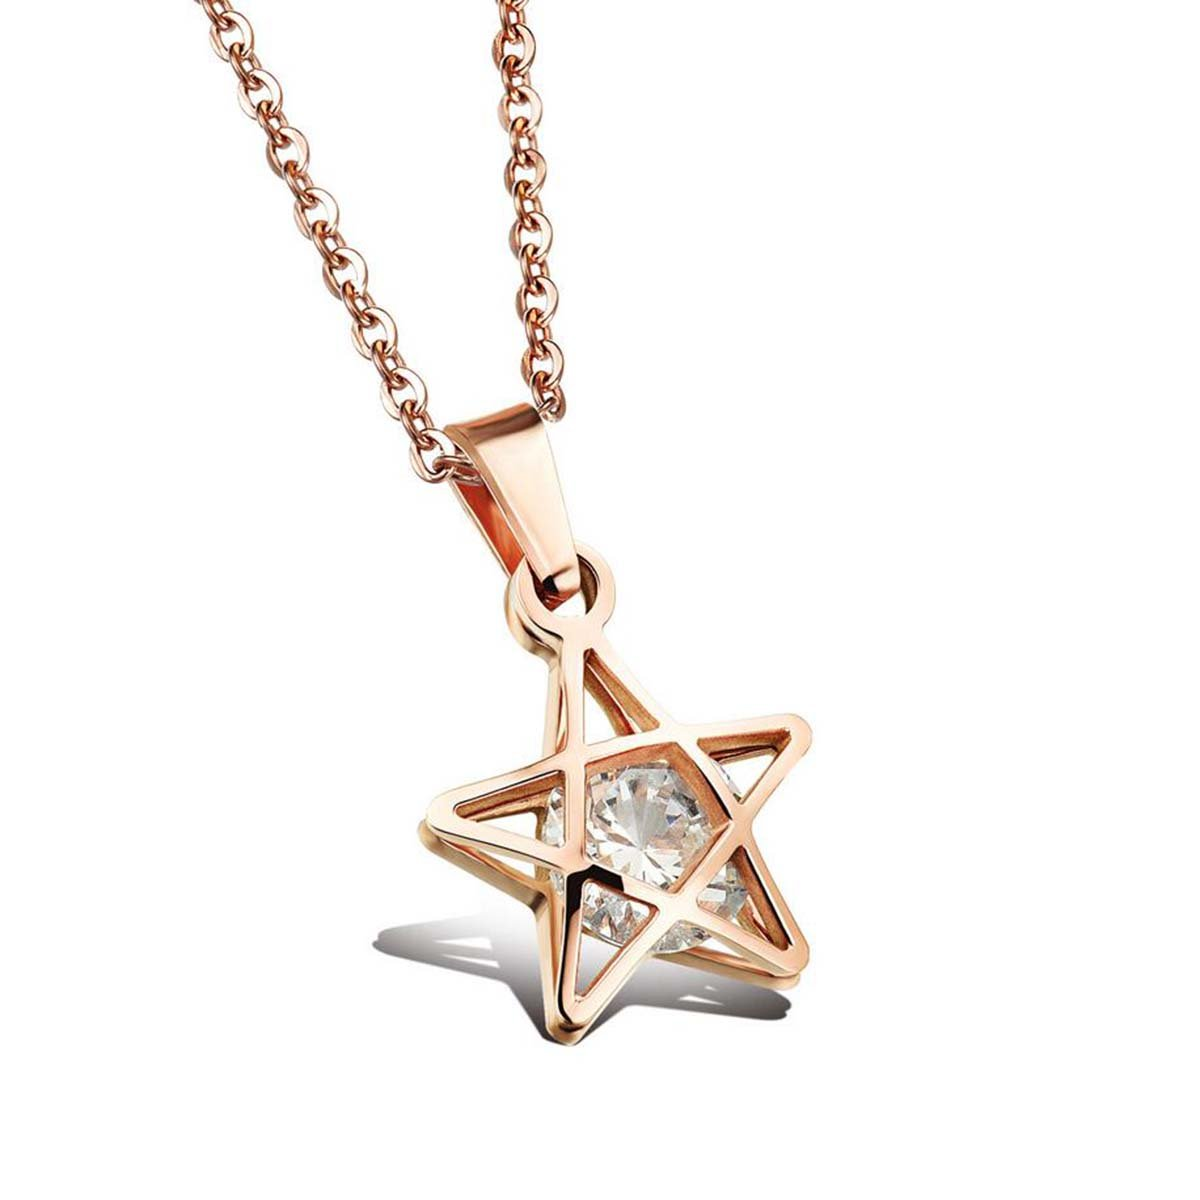 OurJewellery Womens Stainless Steel Small Stars Pendant Love Collarbone Necklace Valentine's Day Gift (Rose Gold)